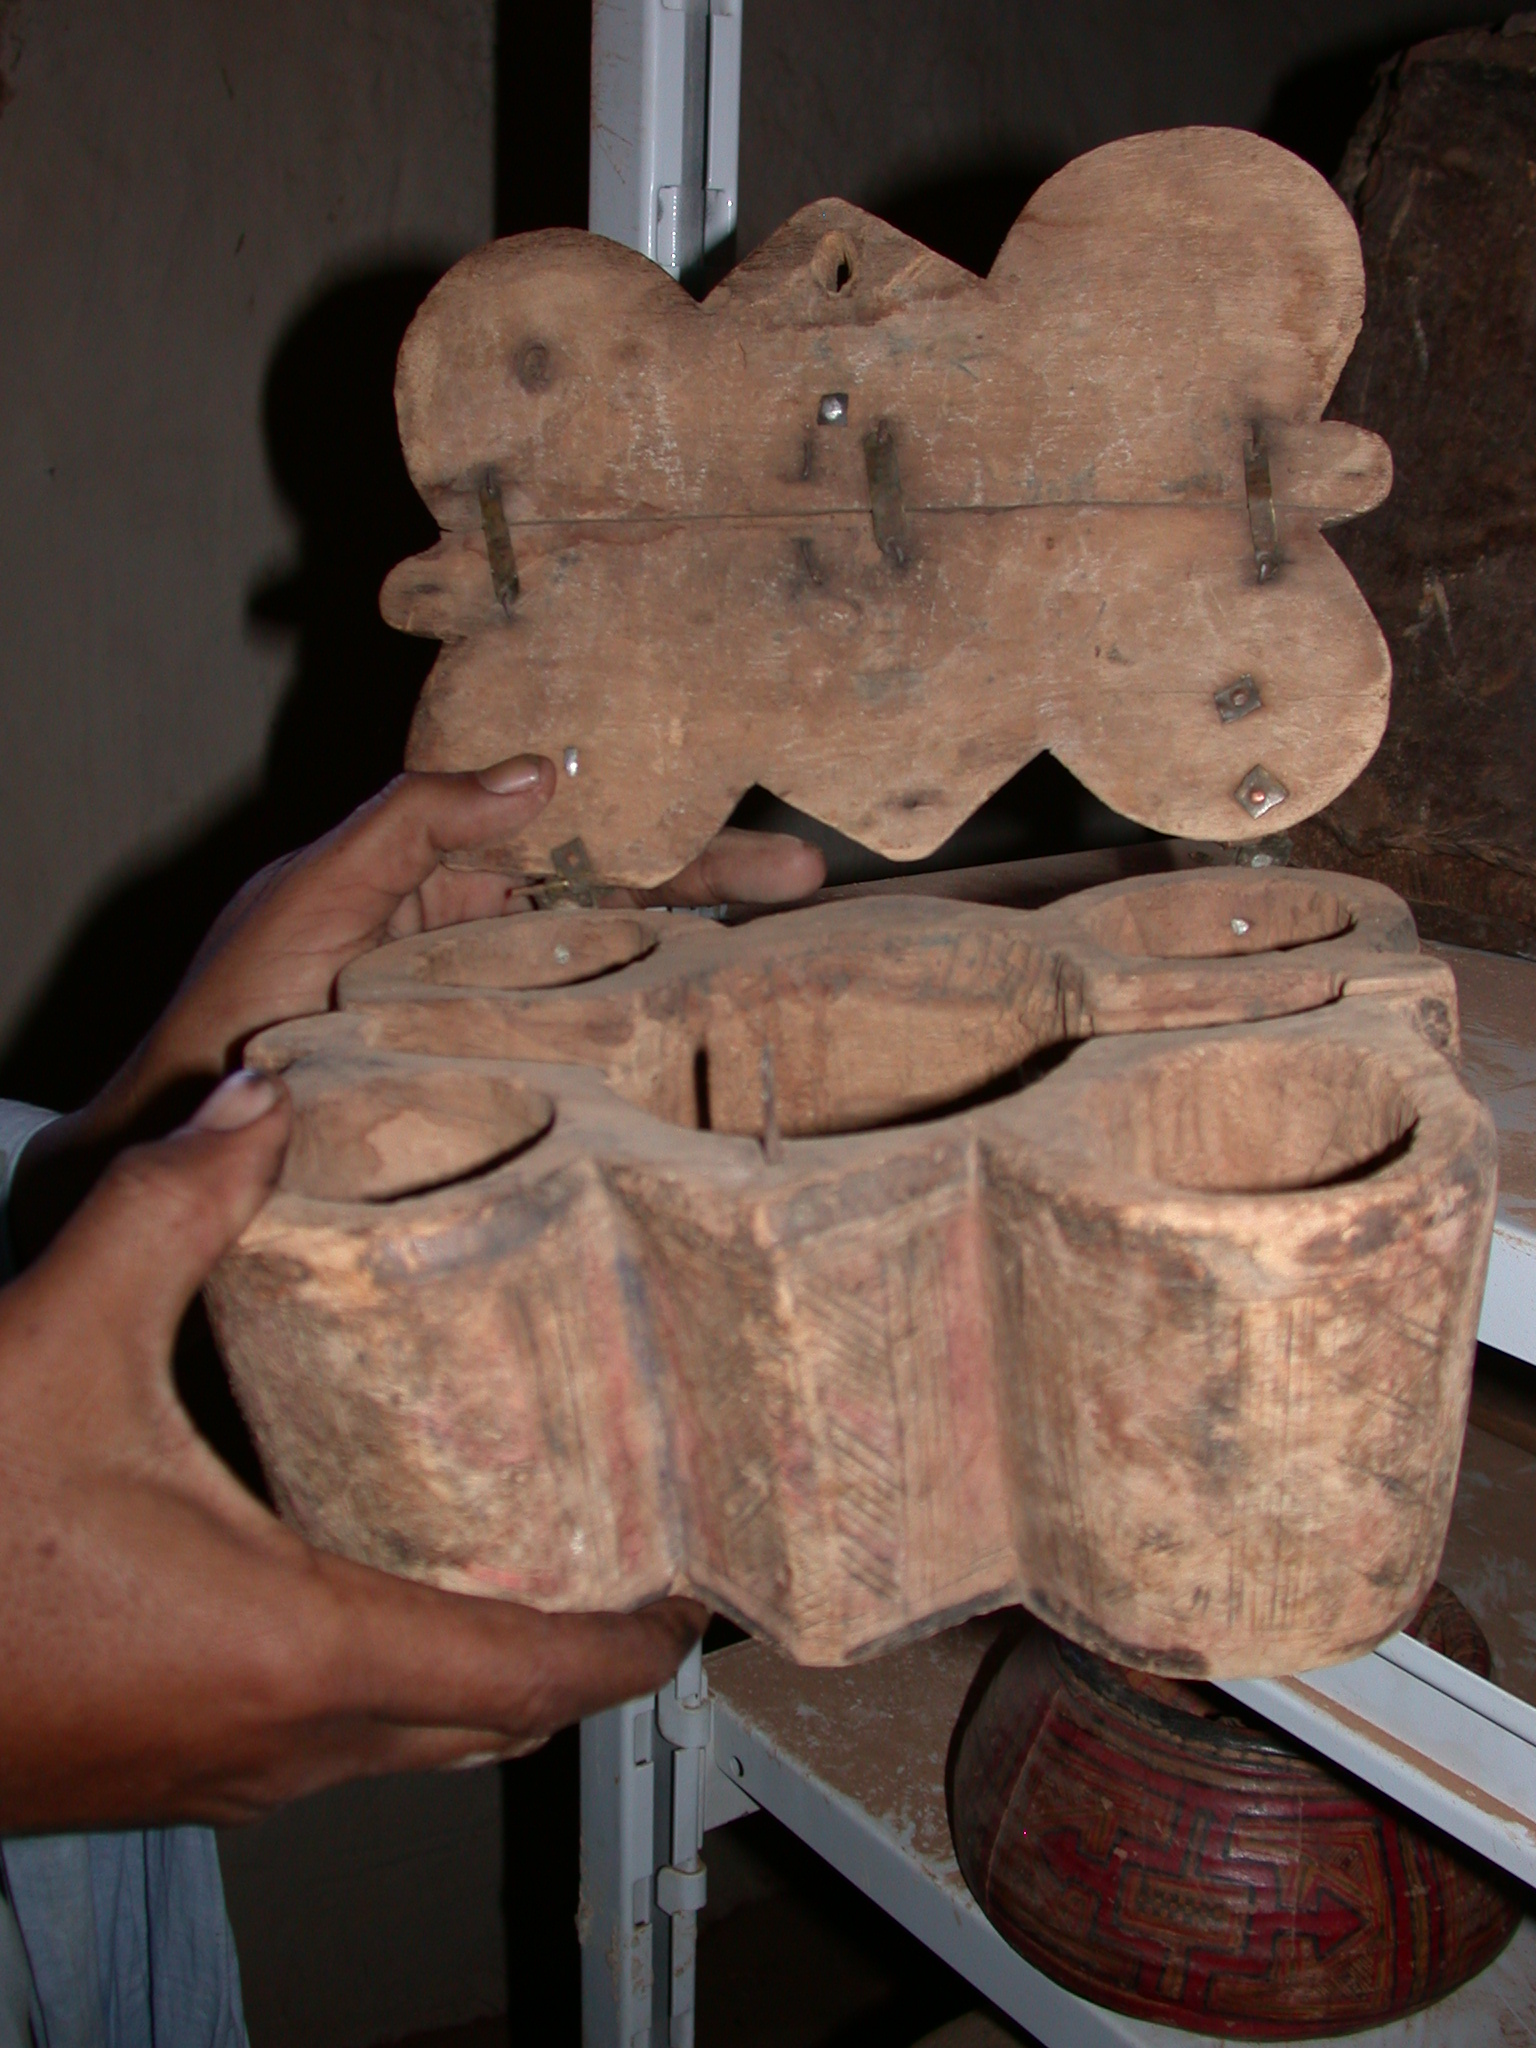 Maybe Traditional Jewelry Box in Ancient City of Oualata, Mauritania